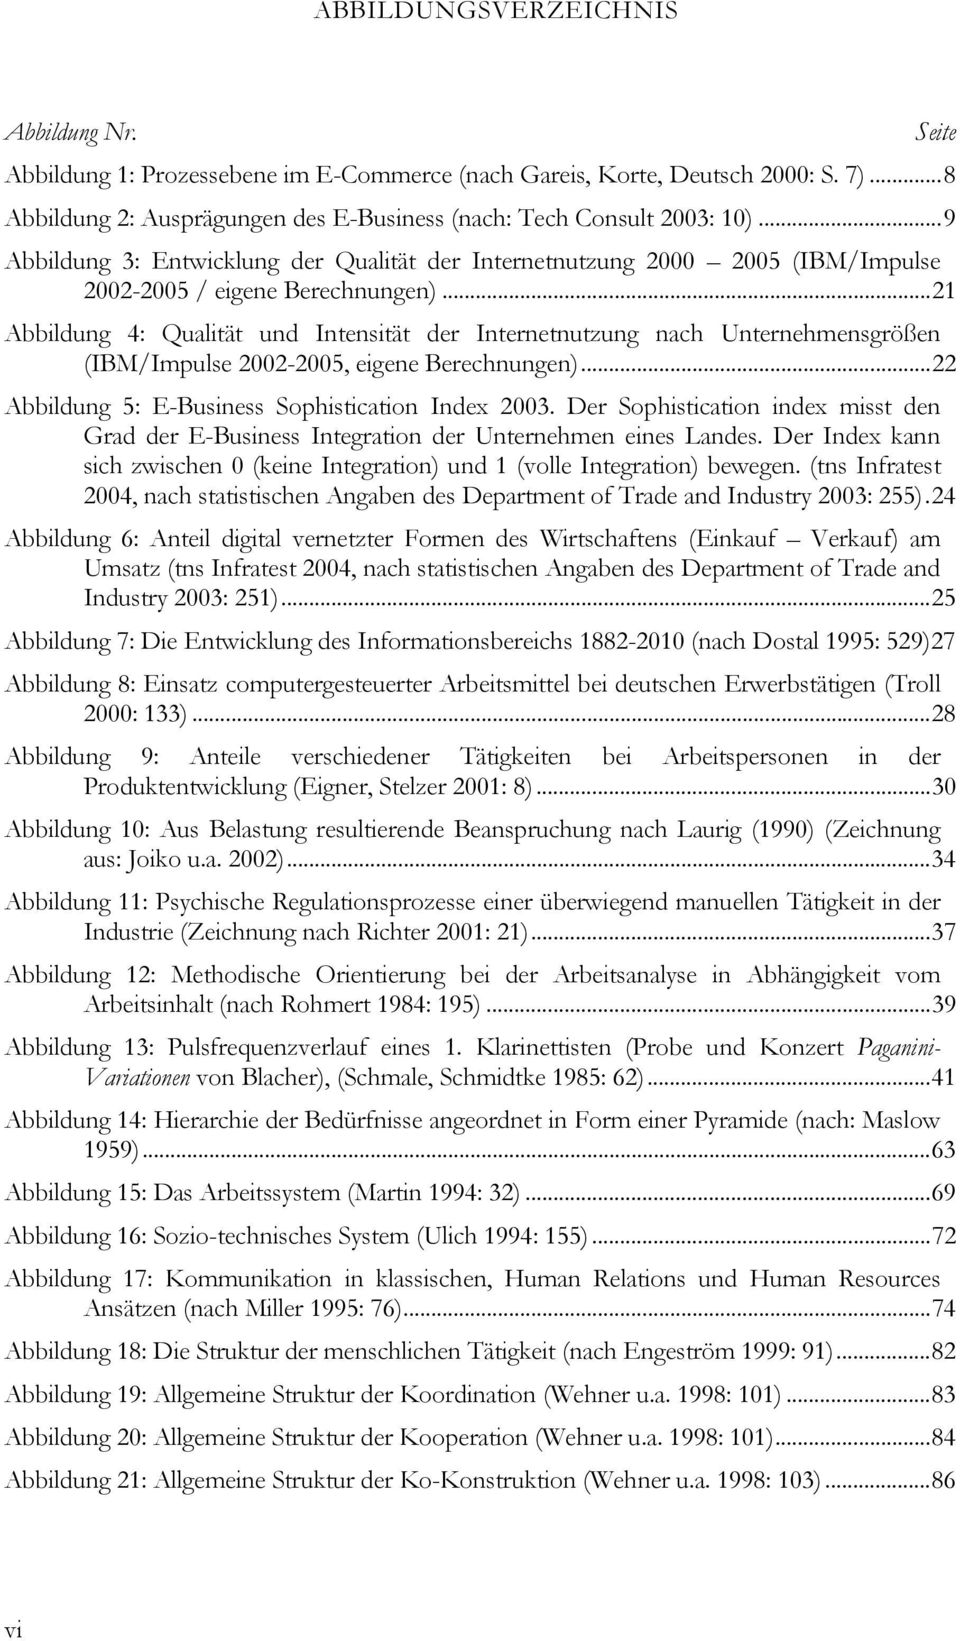 ..21 Abbildung 4: Qualität und Intensität der Internetnutzung nach Unternehmensgrößen (IBM/Impulse 2002-2005, eigene Berechnungen)...22 Abbildung 5: E-Business Sophistication Index 2003.